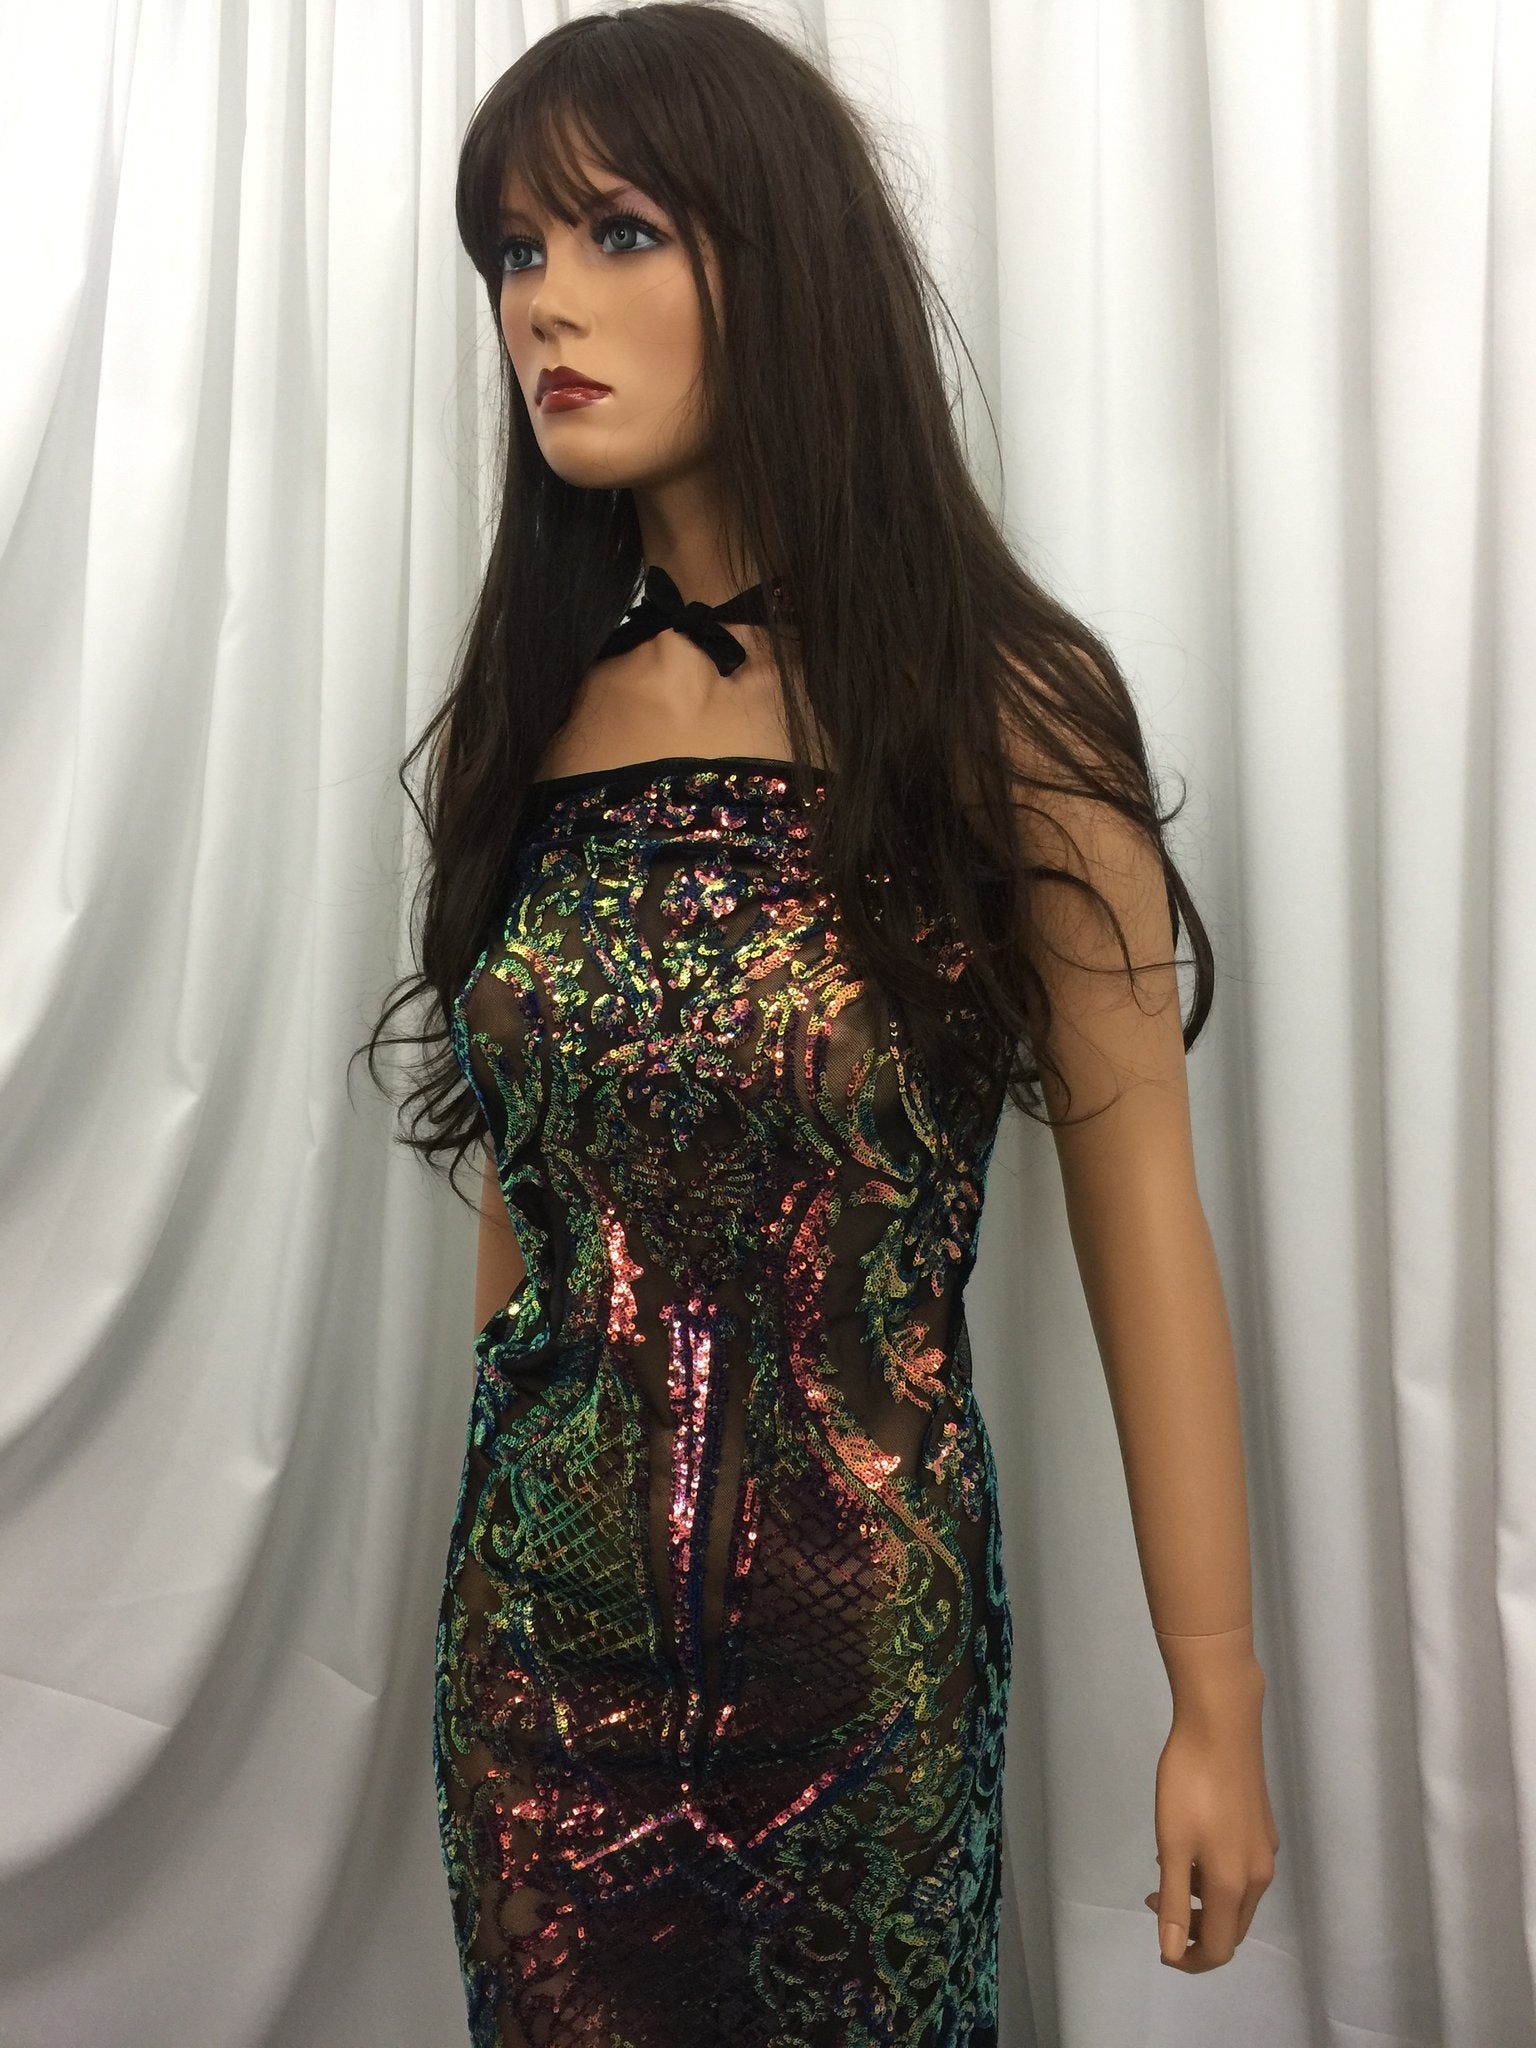 Supreme 4 Way Stretch Iridescent Rainbow Sequins Fabric By The Yard Embroidered Mesh Sequin For Dress Top Fashion Prom Fabric Bridal Wedding